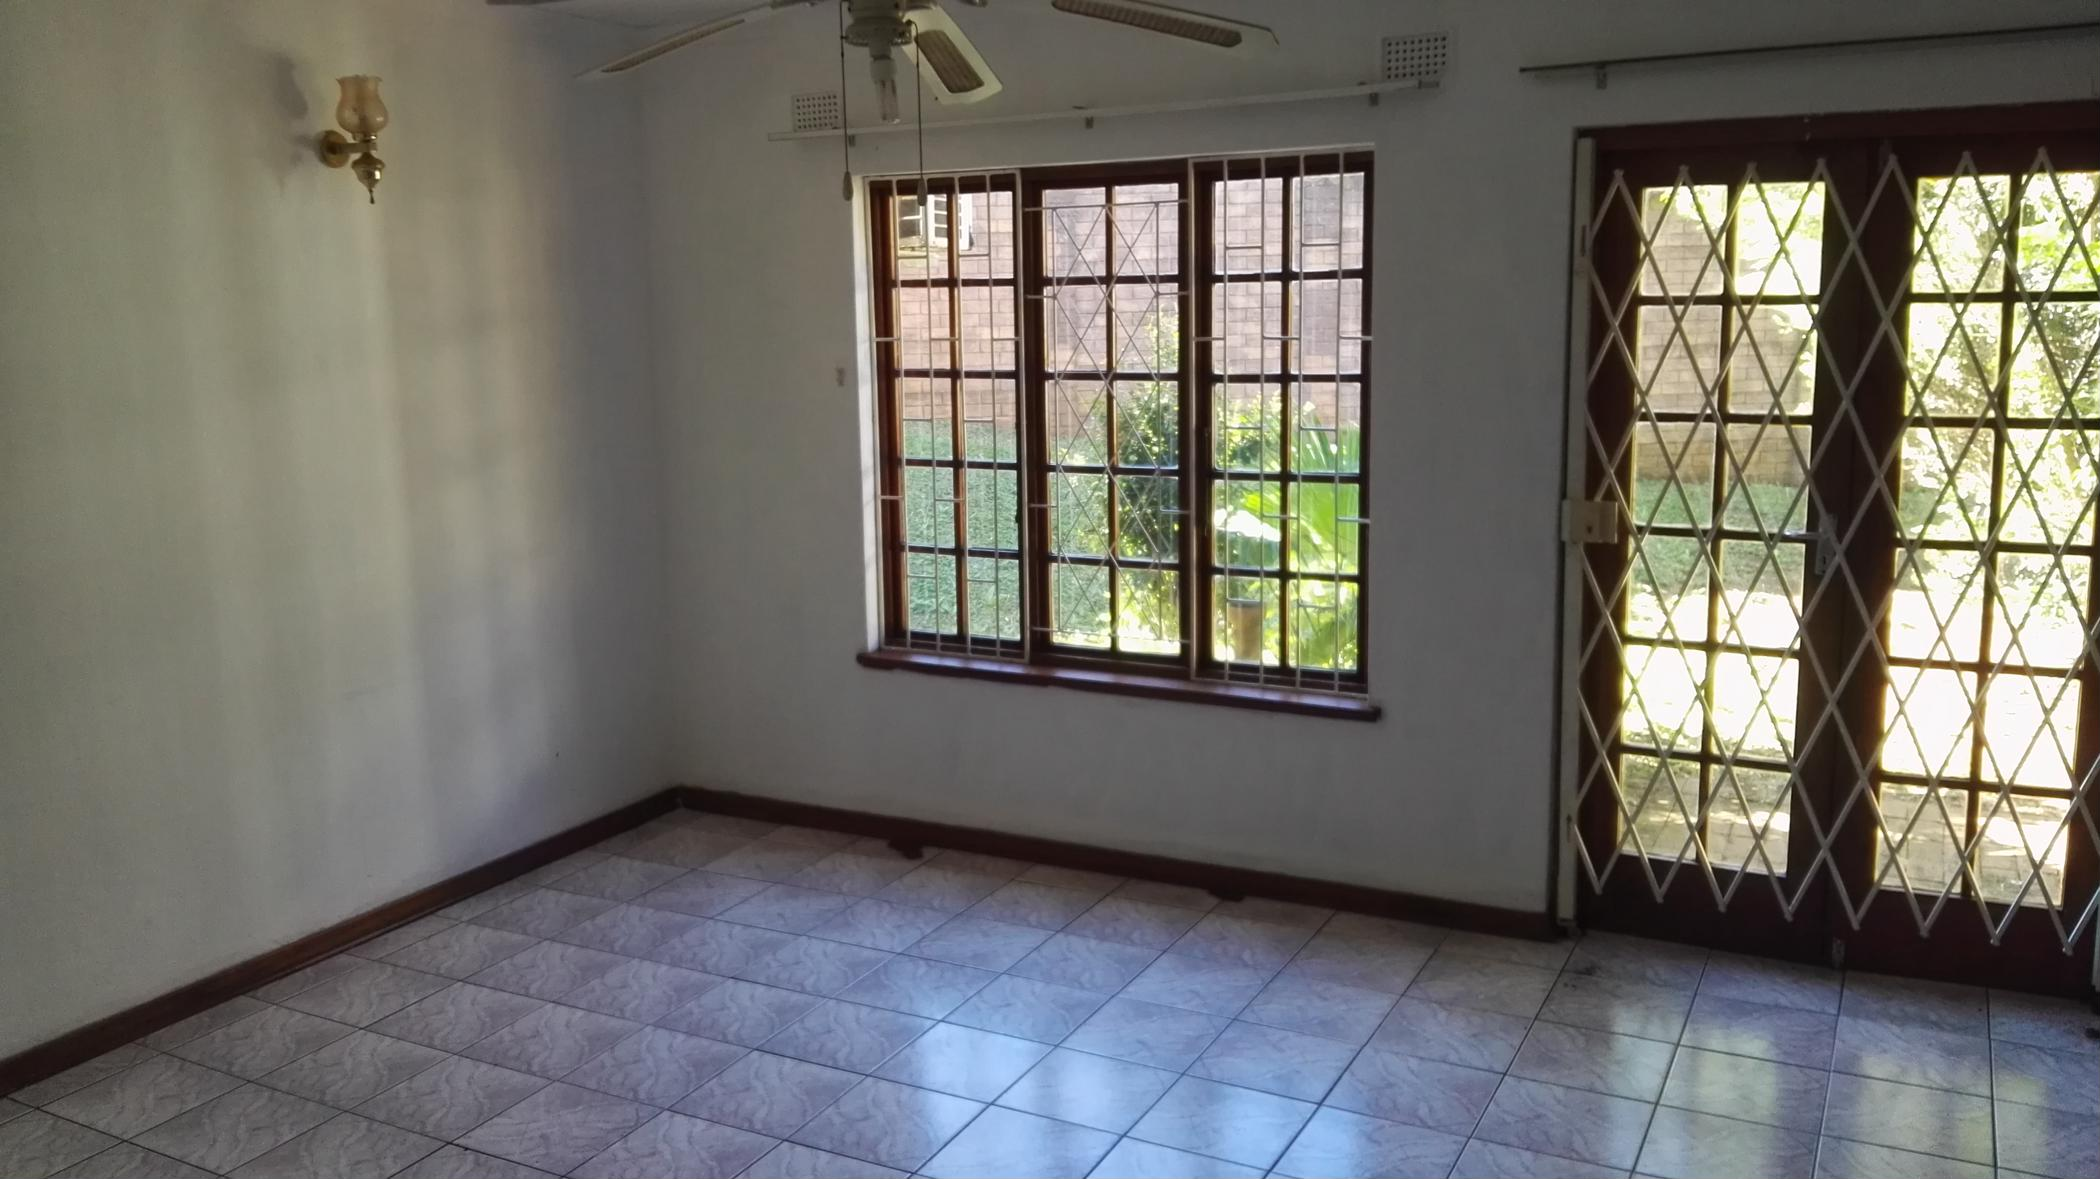 https://listing.pamgolding.co.za/images/properties/201811/1125877/H/1125877_H_1.jpg